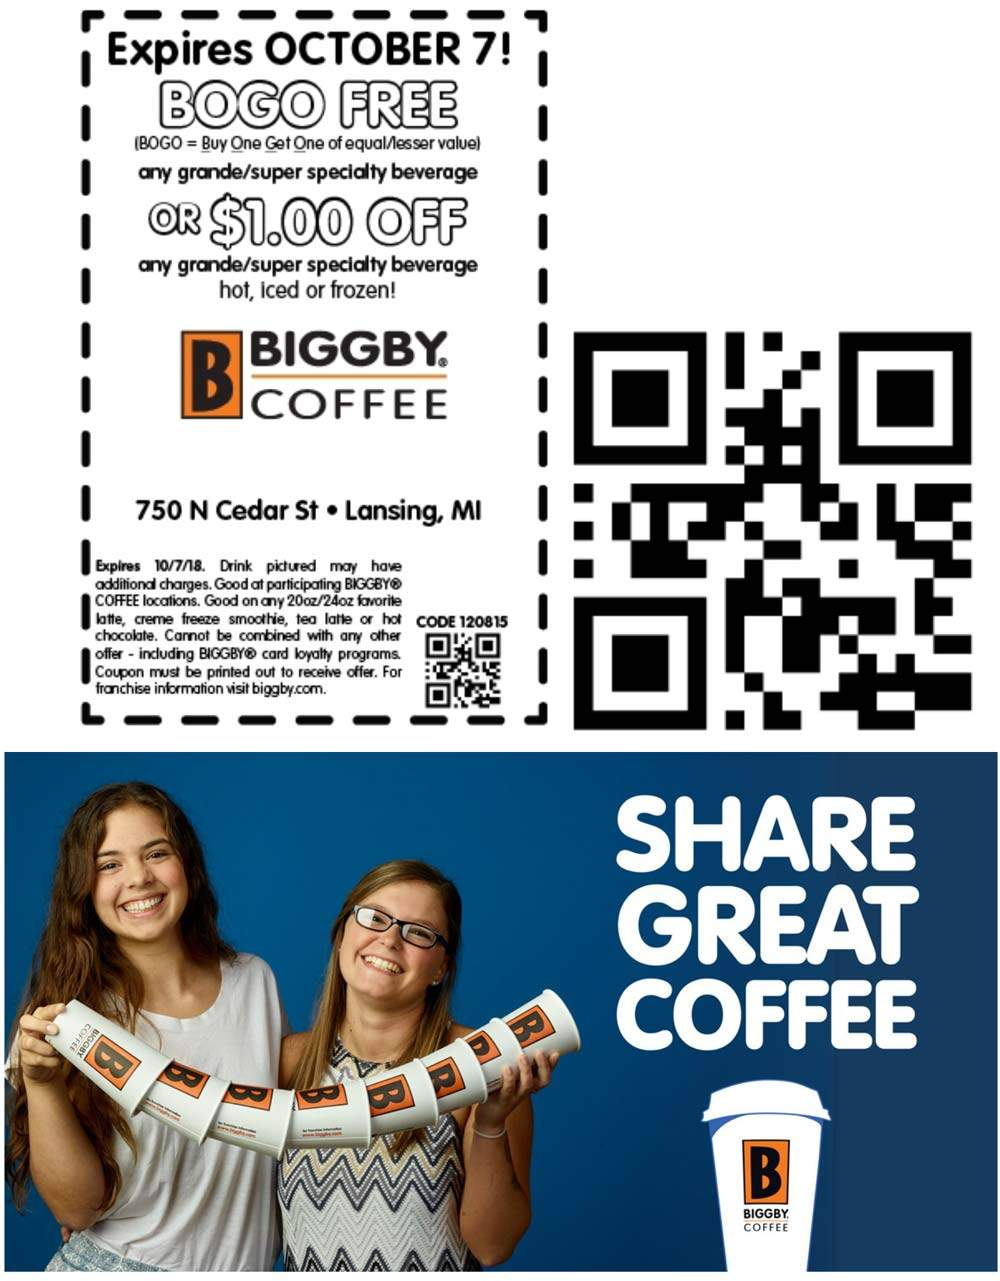 Biggby Coffee Coupon September 2019 Second coffee free at Biggby Coffee